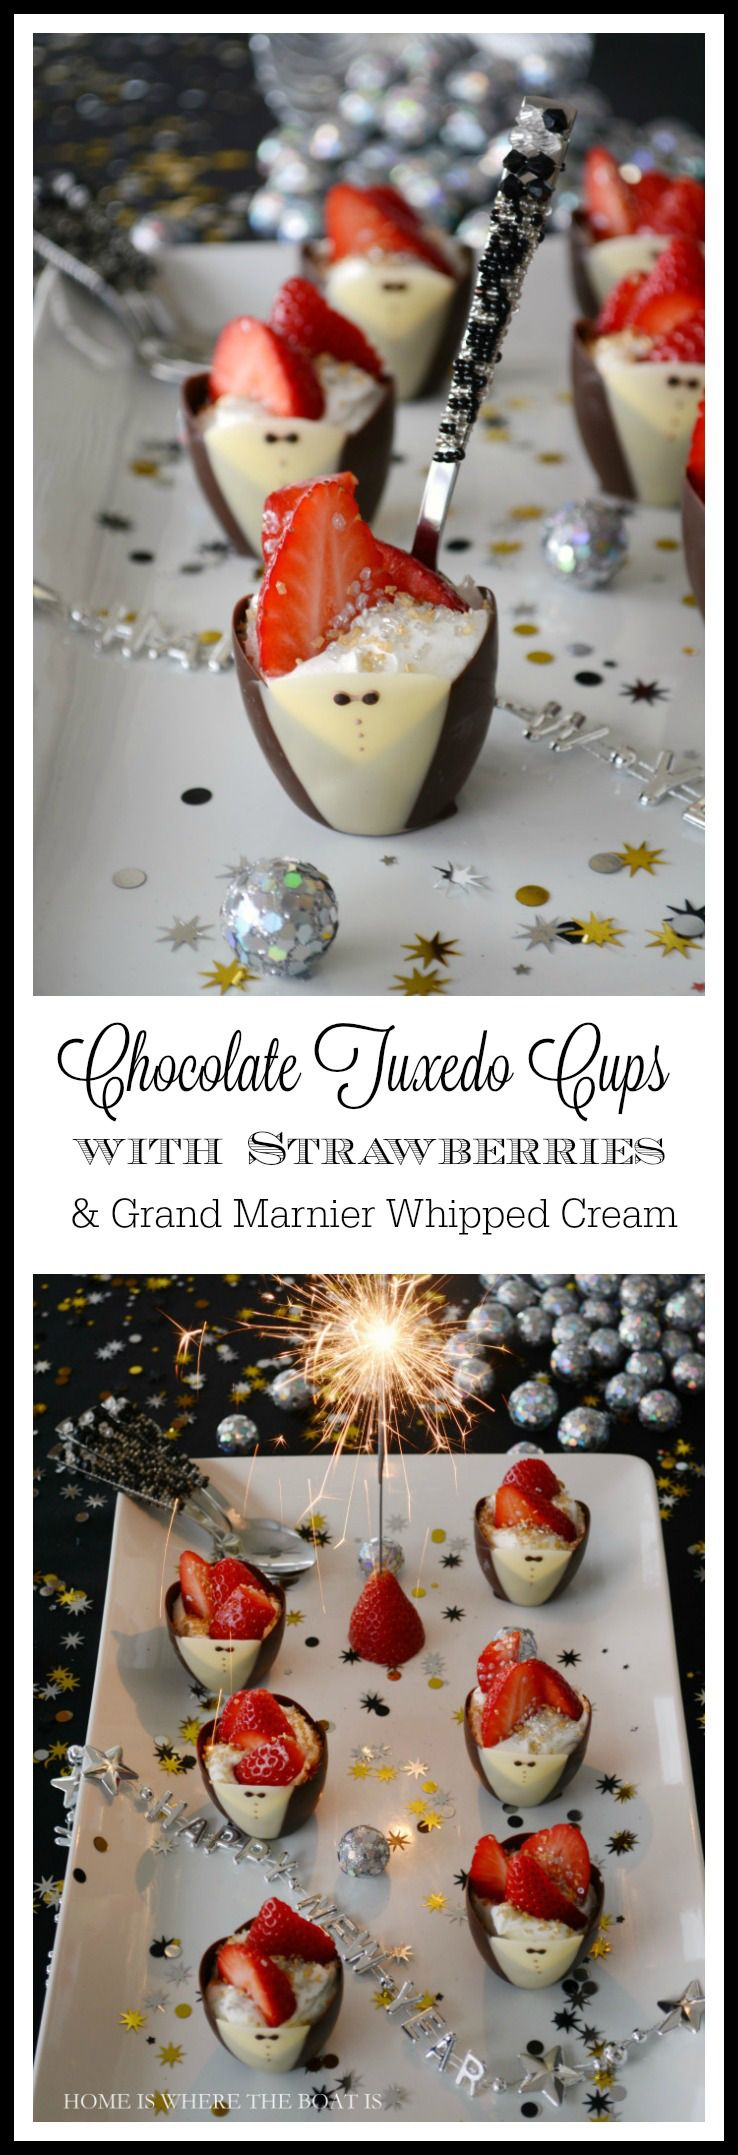 Chocolate Tuxedo Cups with Strawberries and Grand Marnier